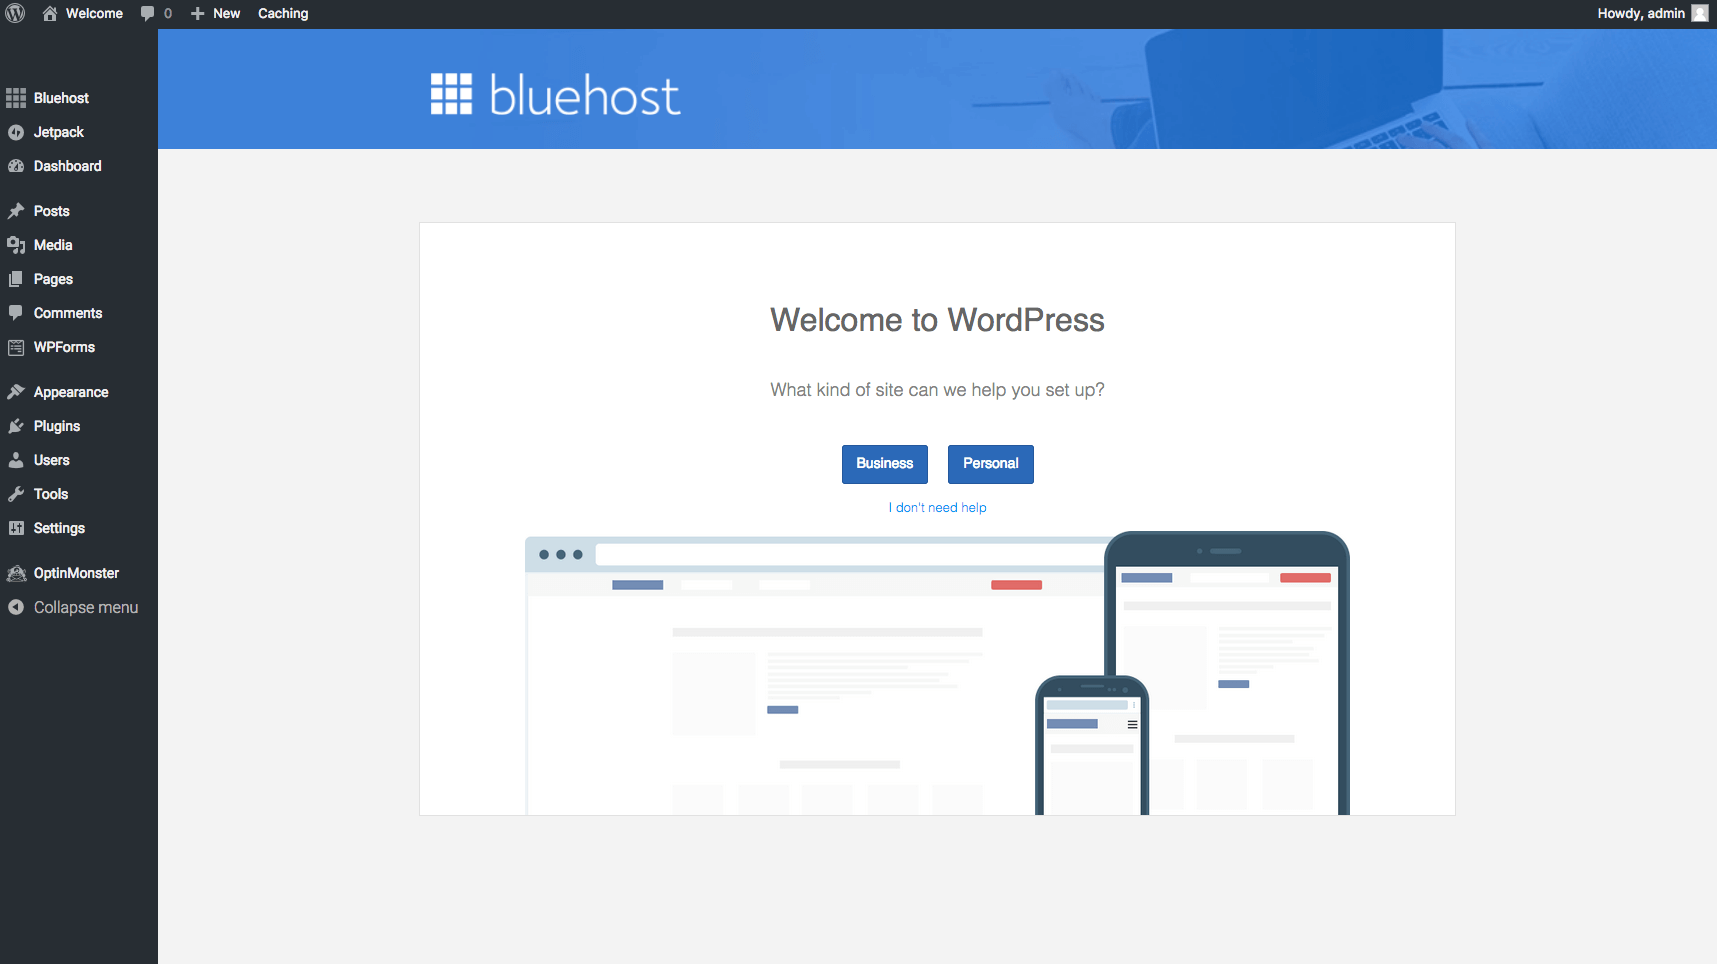 Bluehost12